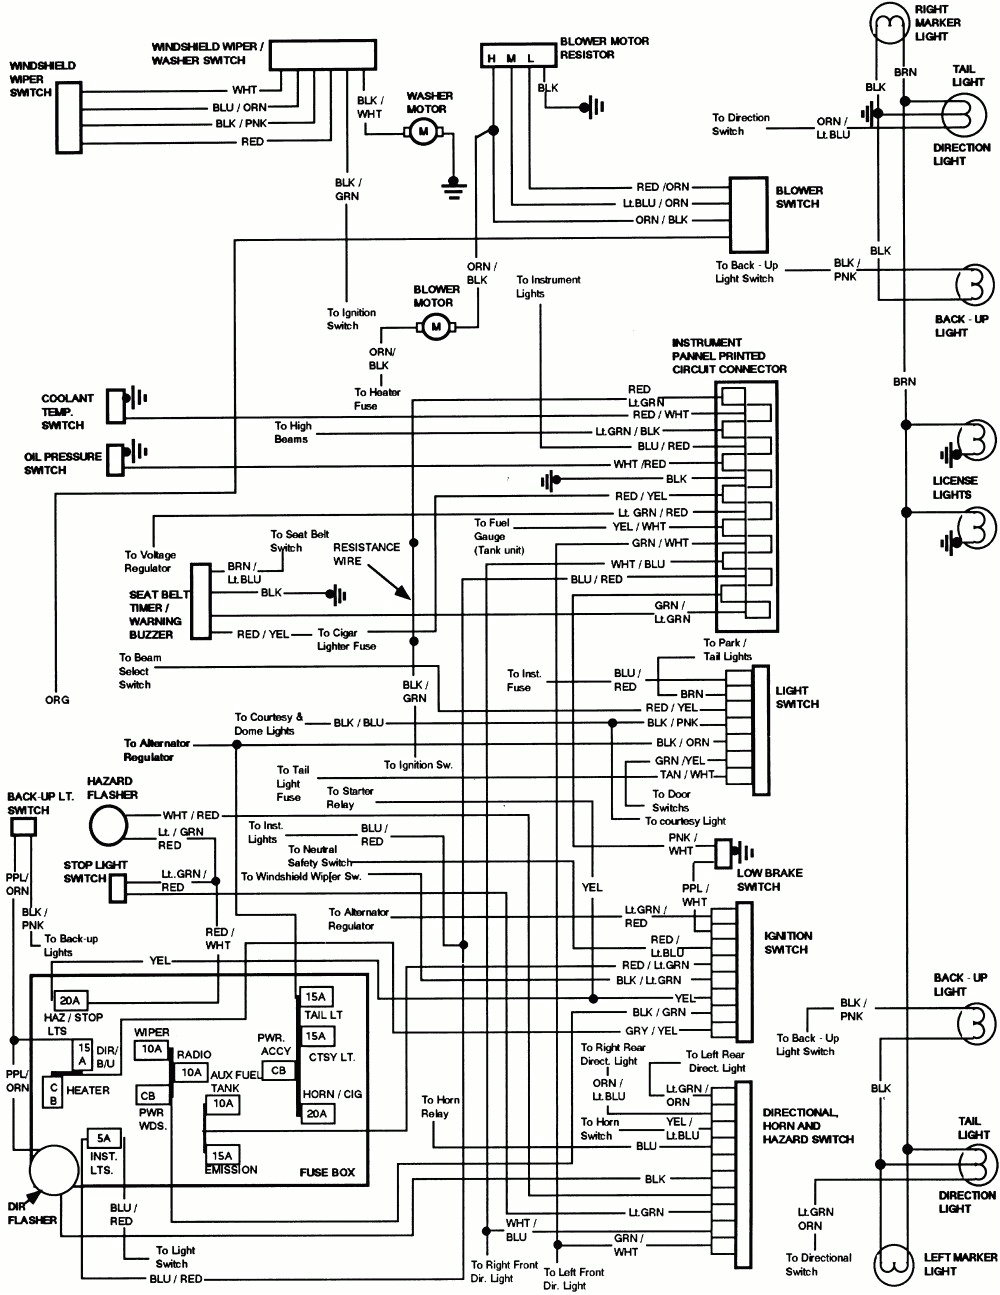 1990 f150 wiring diagram wiring diagram show lifier circuit diagram on 2003 ford f 150 blower motor switch diagram